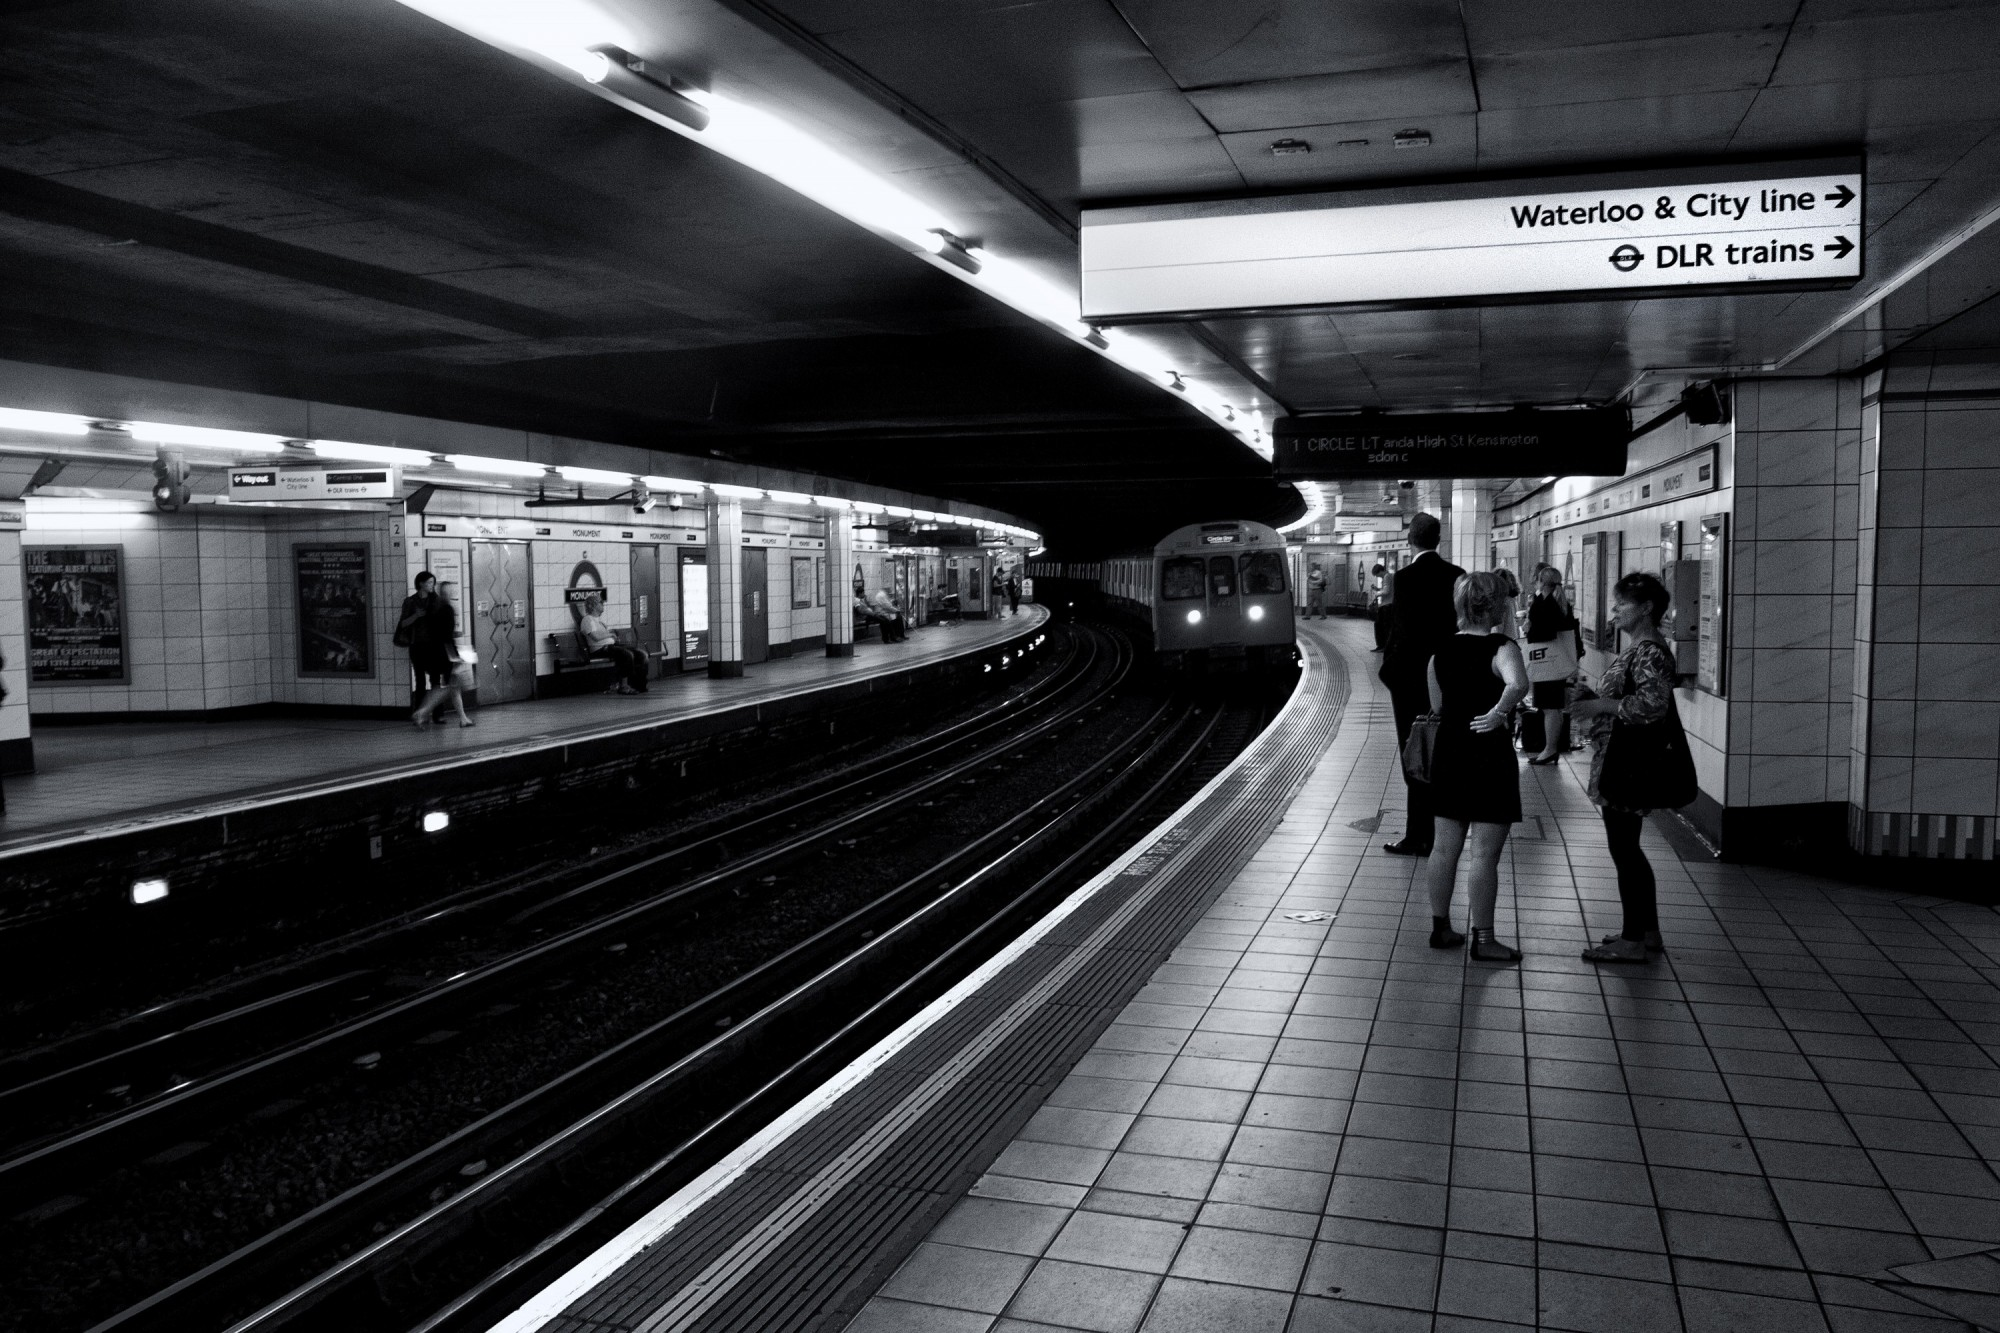 Monochrome shot of subway passengers as they wait for their train on the London Underground.